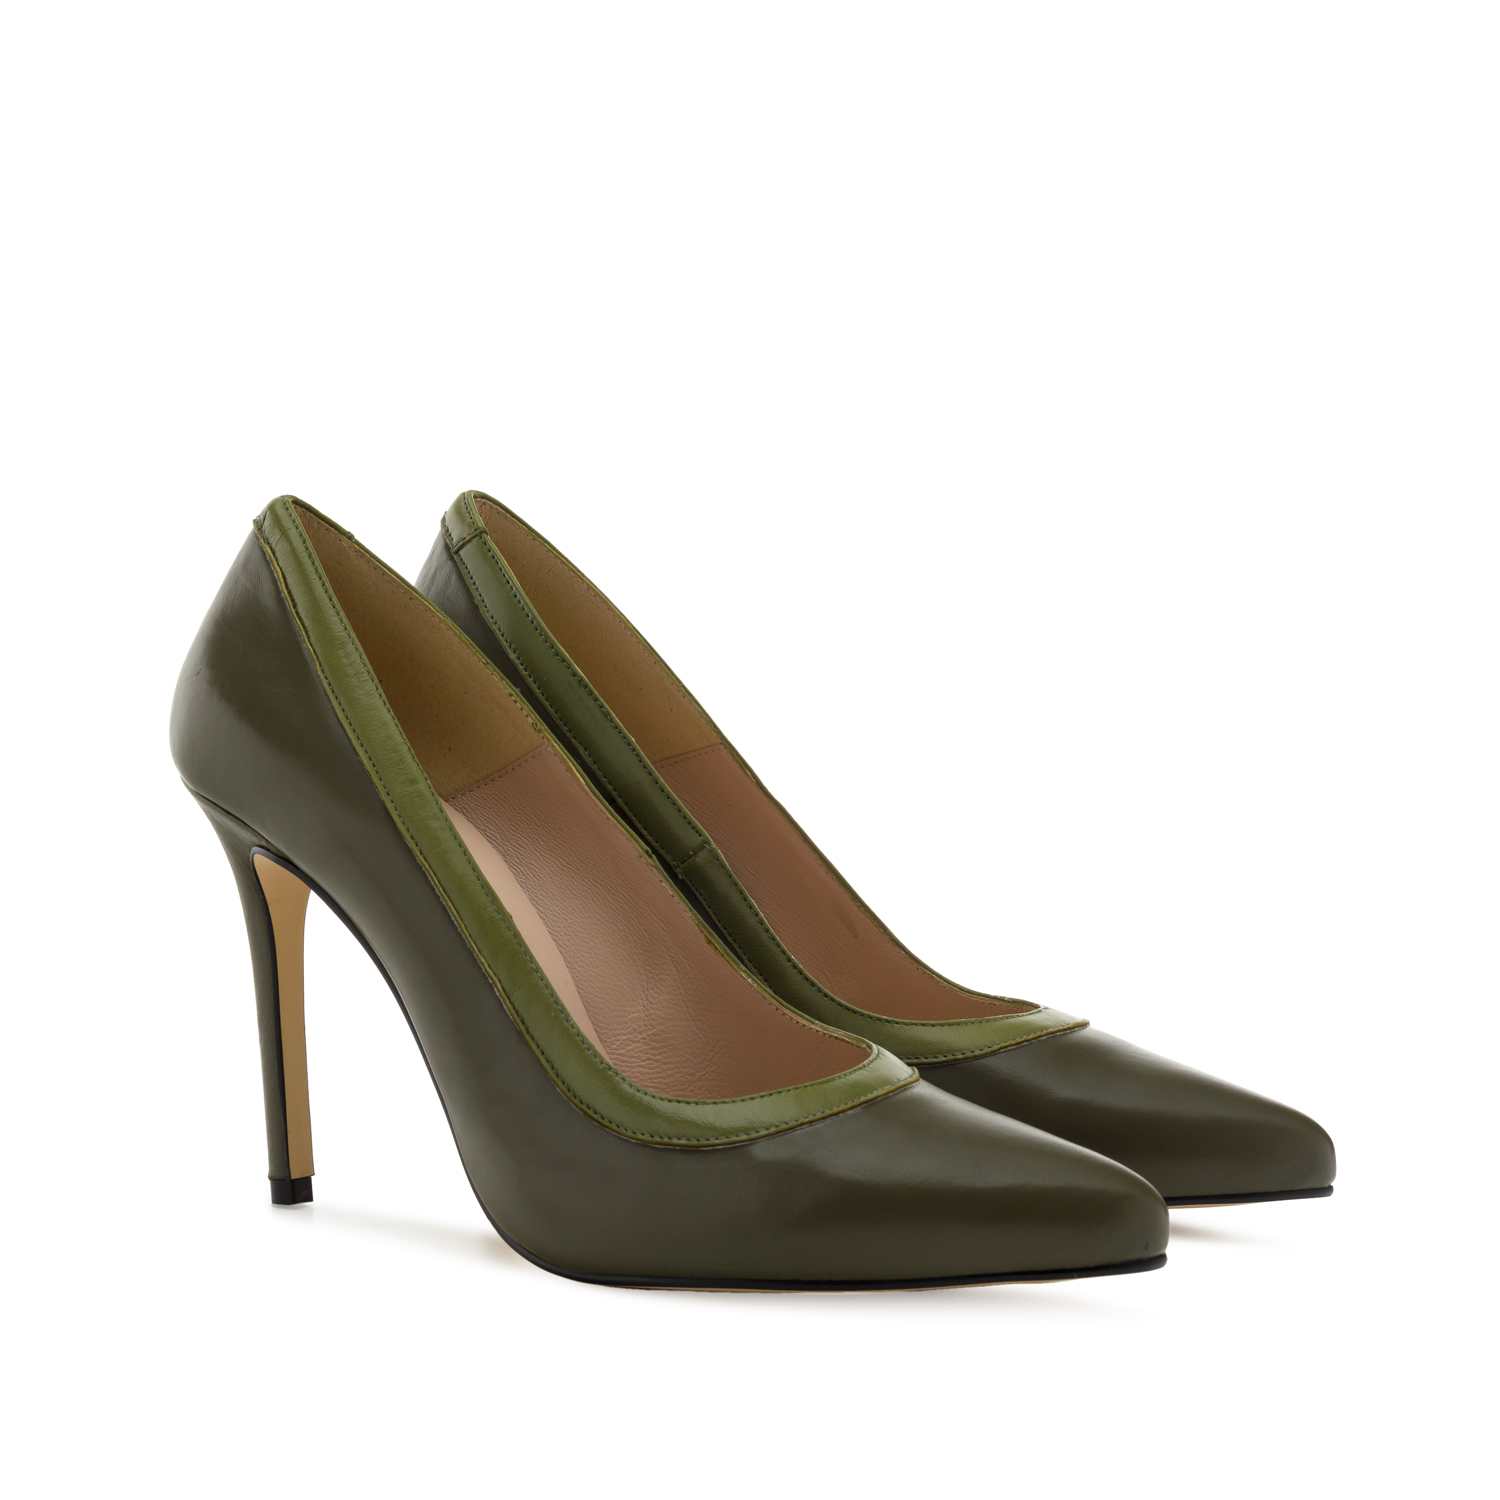 Pumps aus kakifarbenem Leder - MADE in SPAIN -